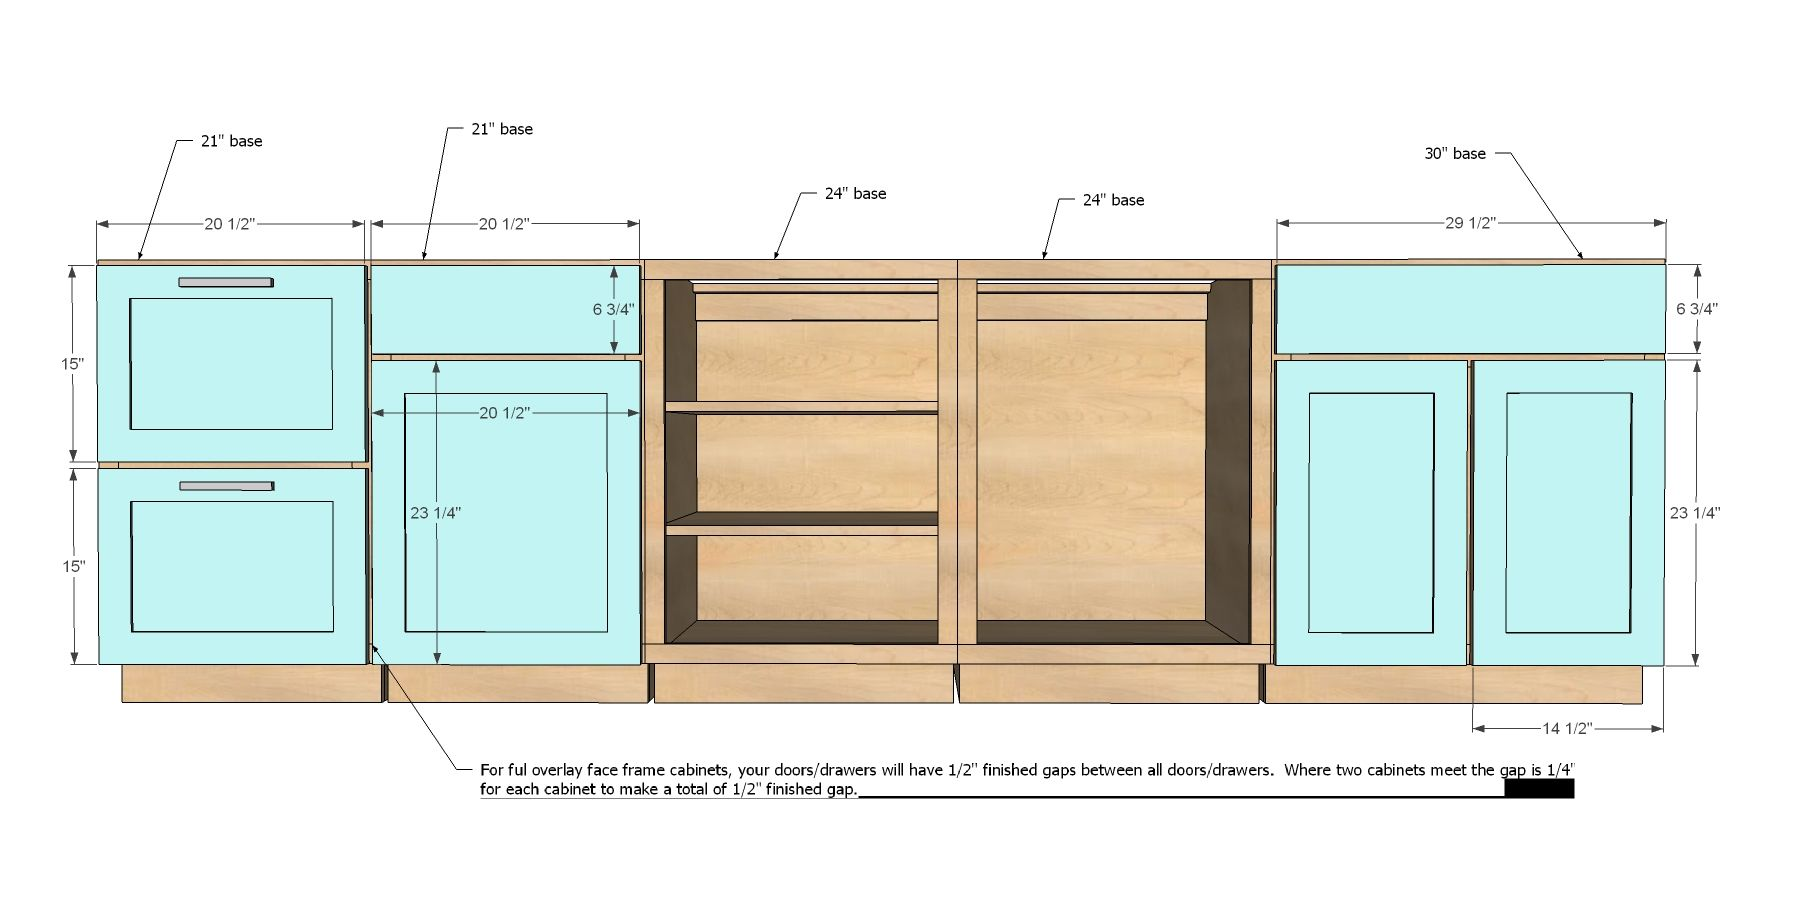 Ana white build a face frame base kitchen cabinet for Basic kitchen base units